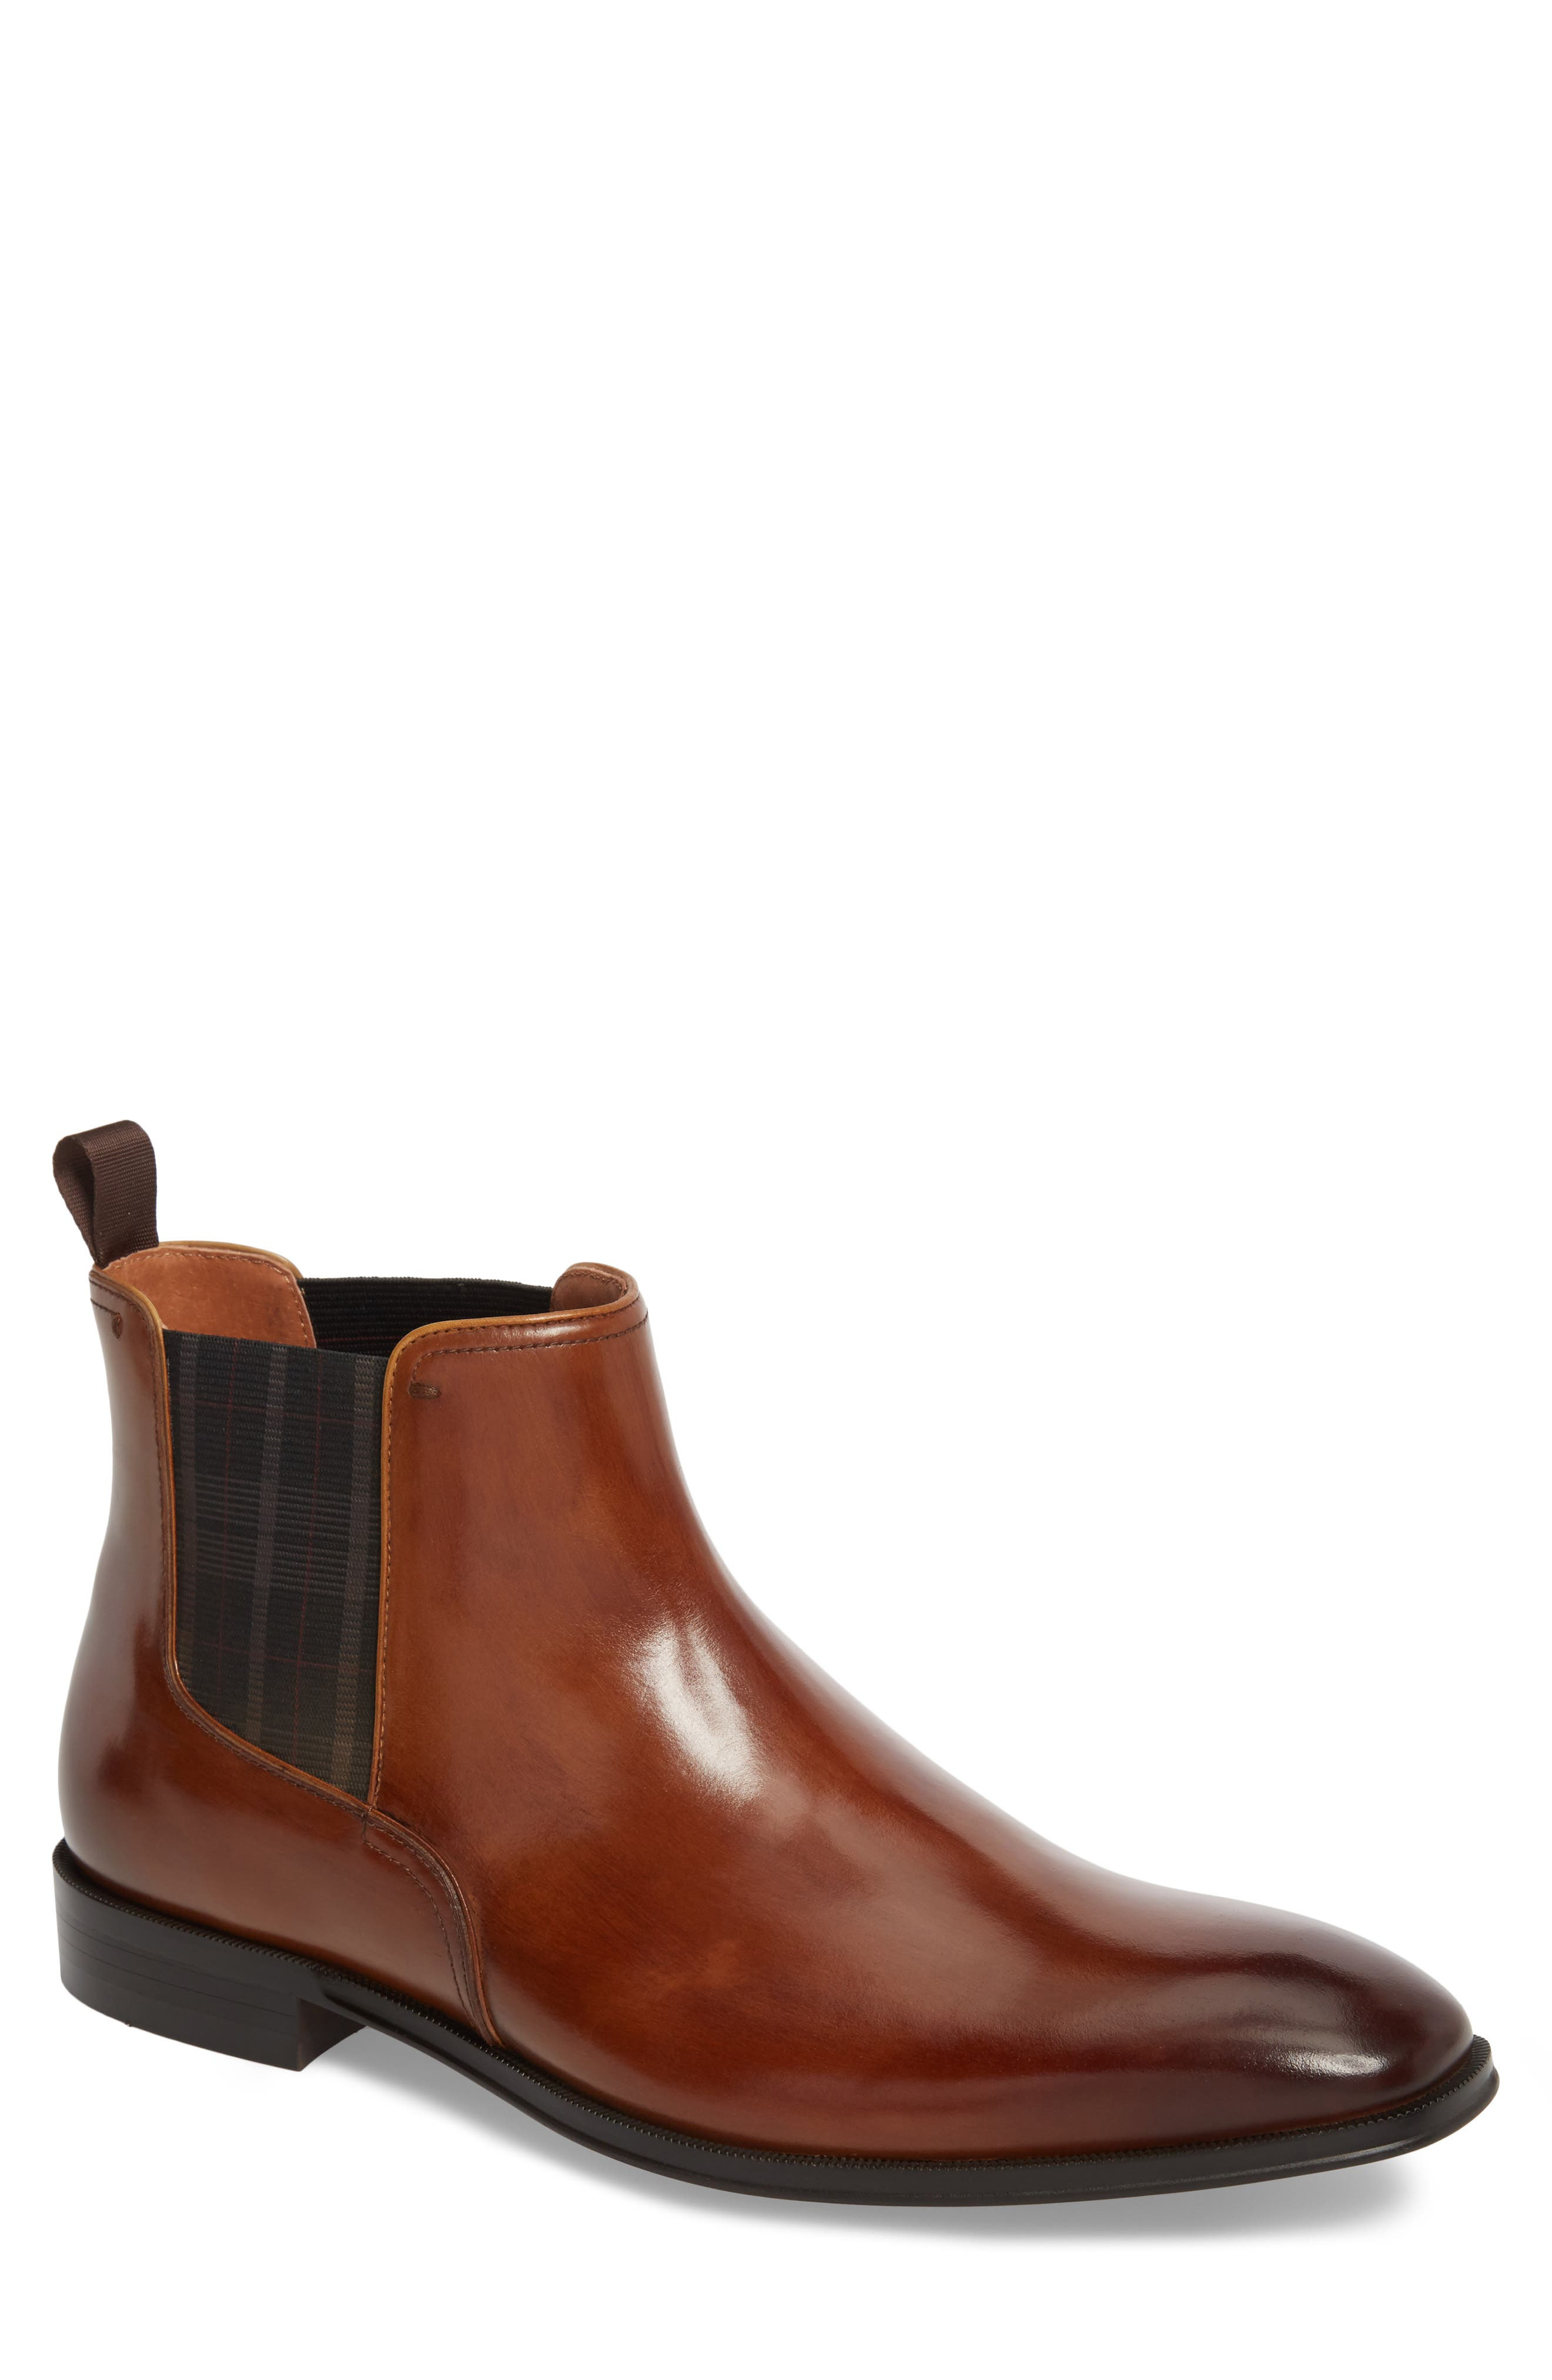 Belfast Chelsea Boot,                             Main thumbnail 1, color,                             COGNAC LEATHER